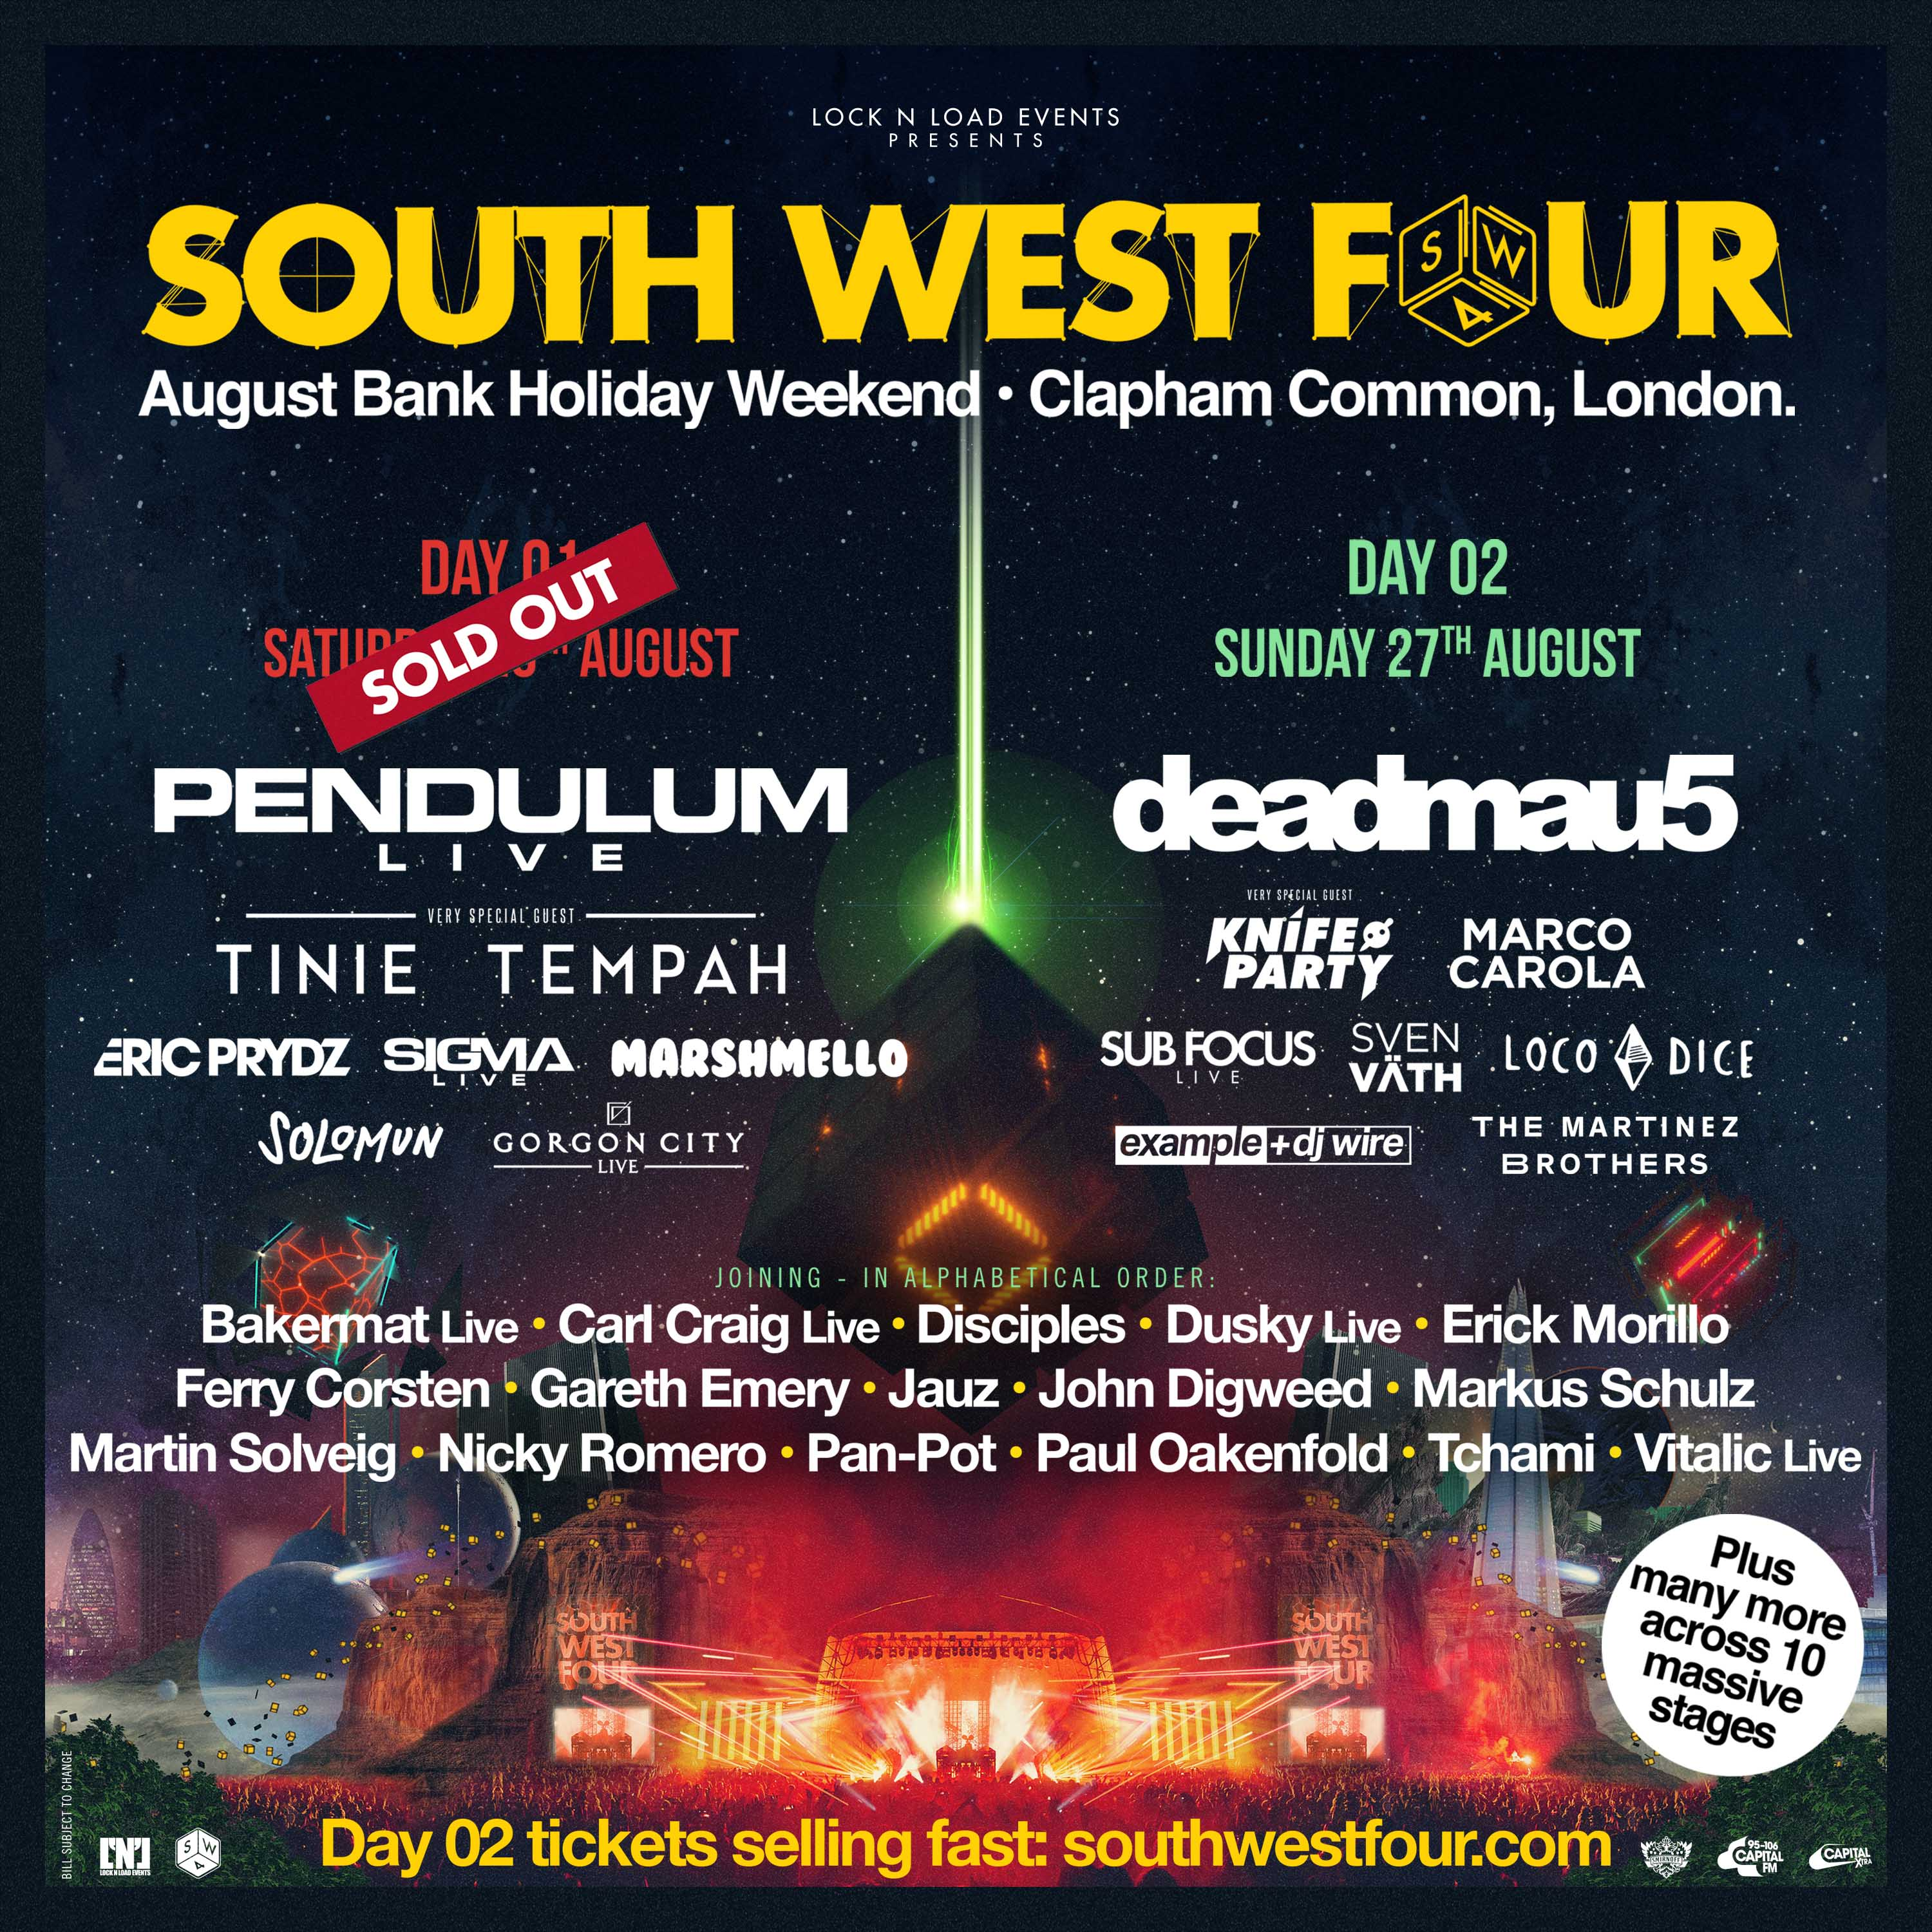 South West Four sold out day one